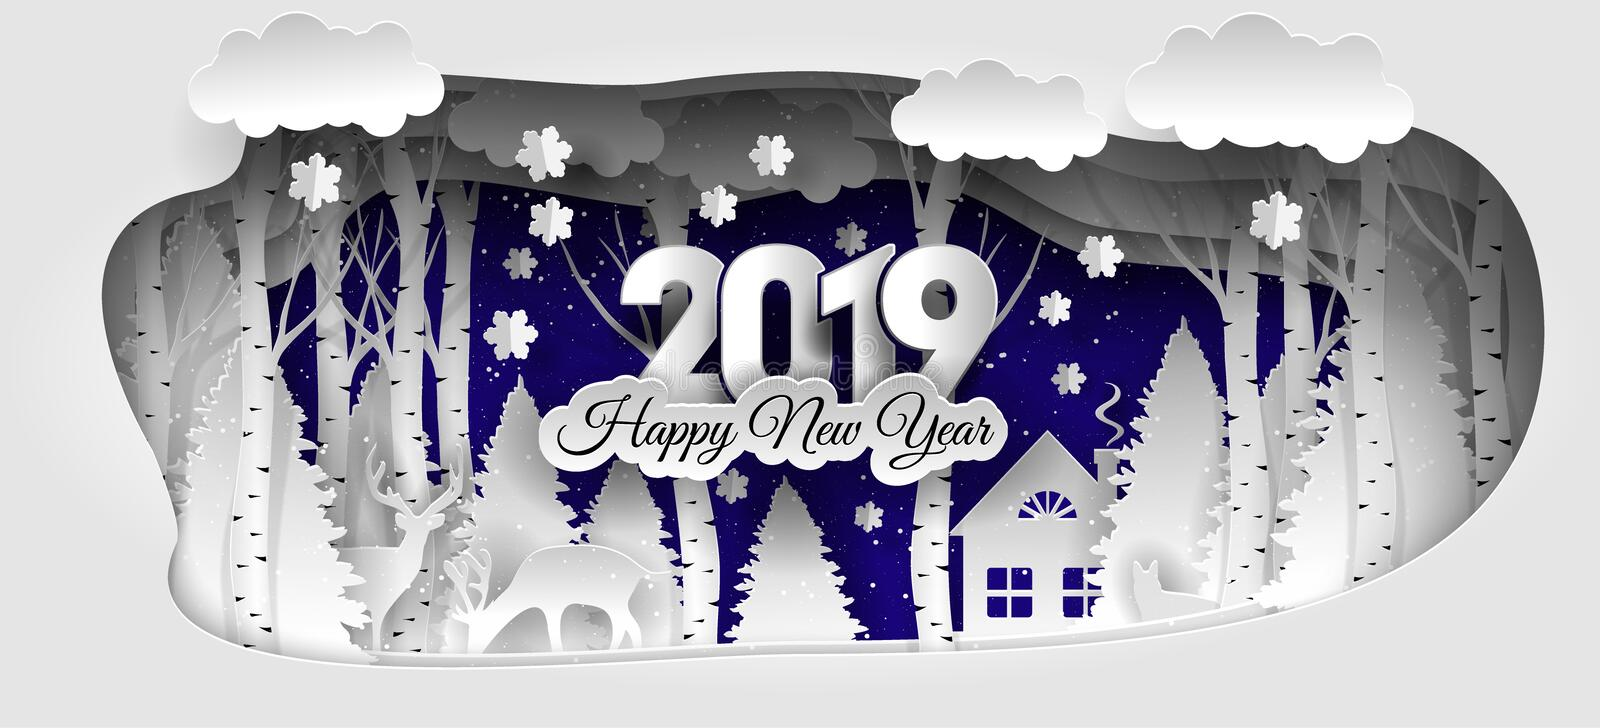 Creative happy new year 2019 design. Winter forest. Happy new year 2019 stock illustration